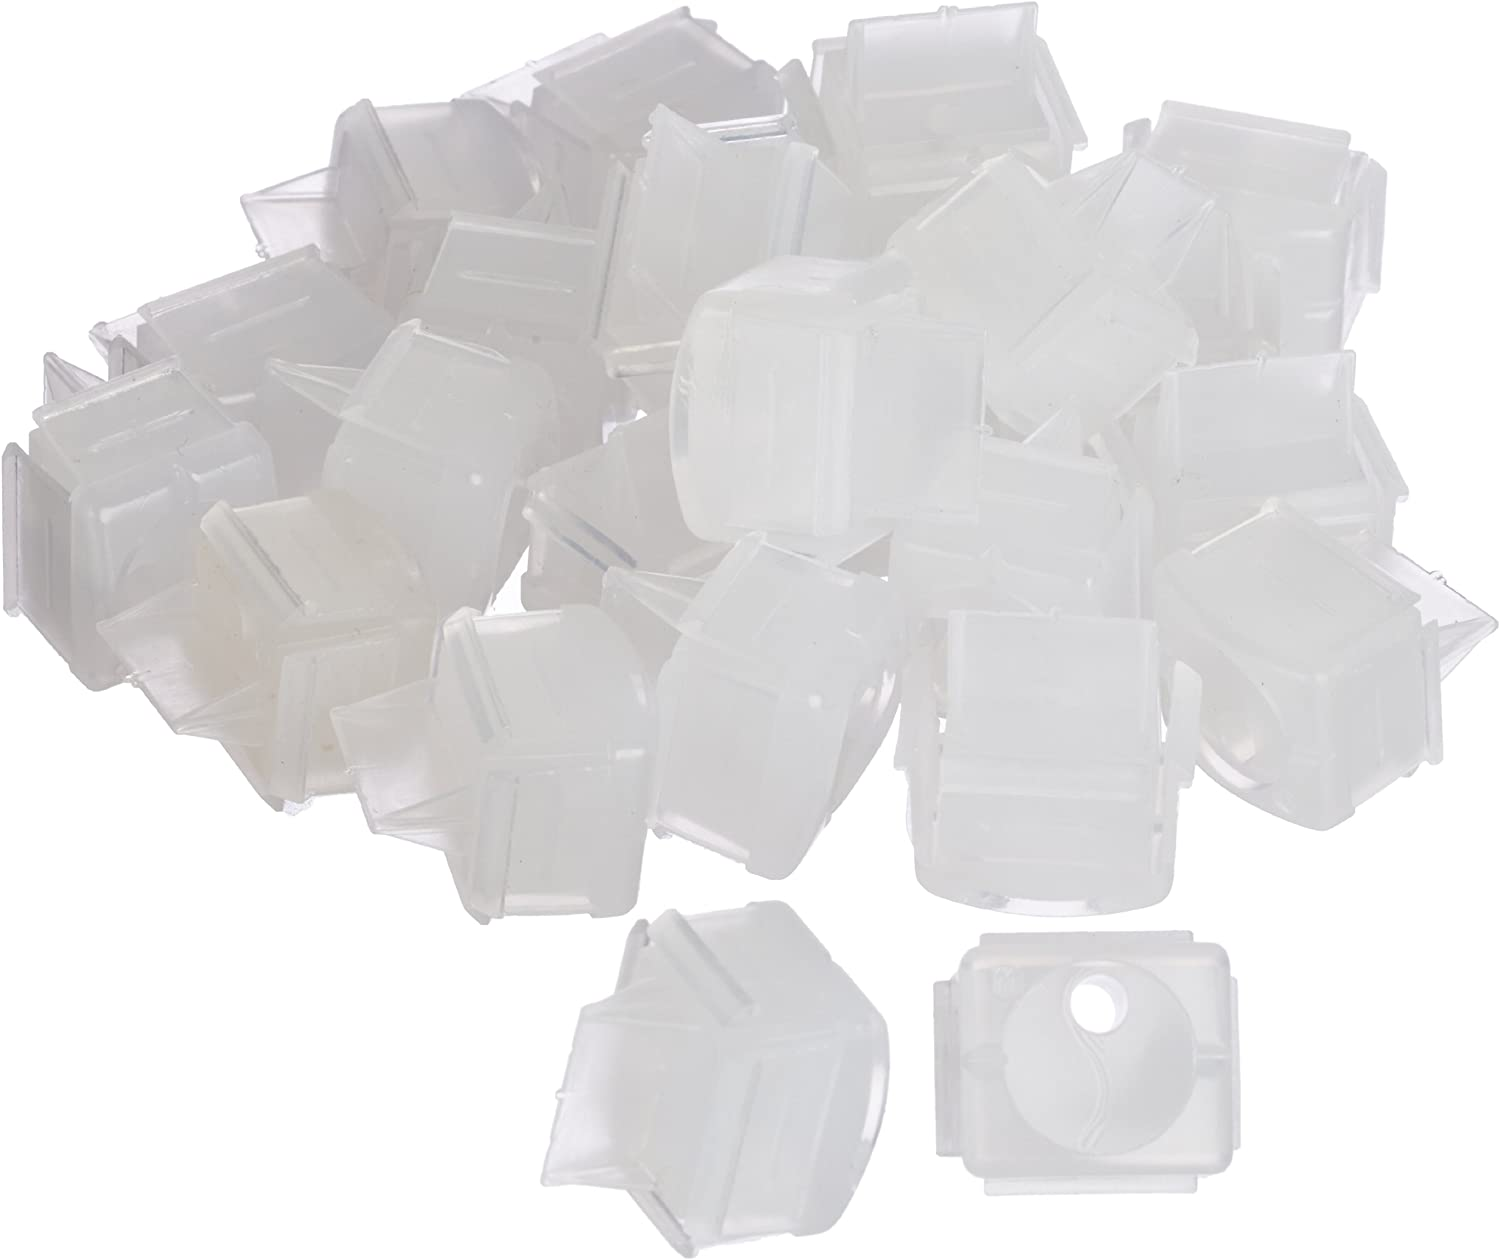 Clear Caretaker In-floor Cleaning Head Mini Nozzle 25 Pack